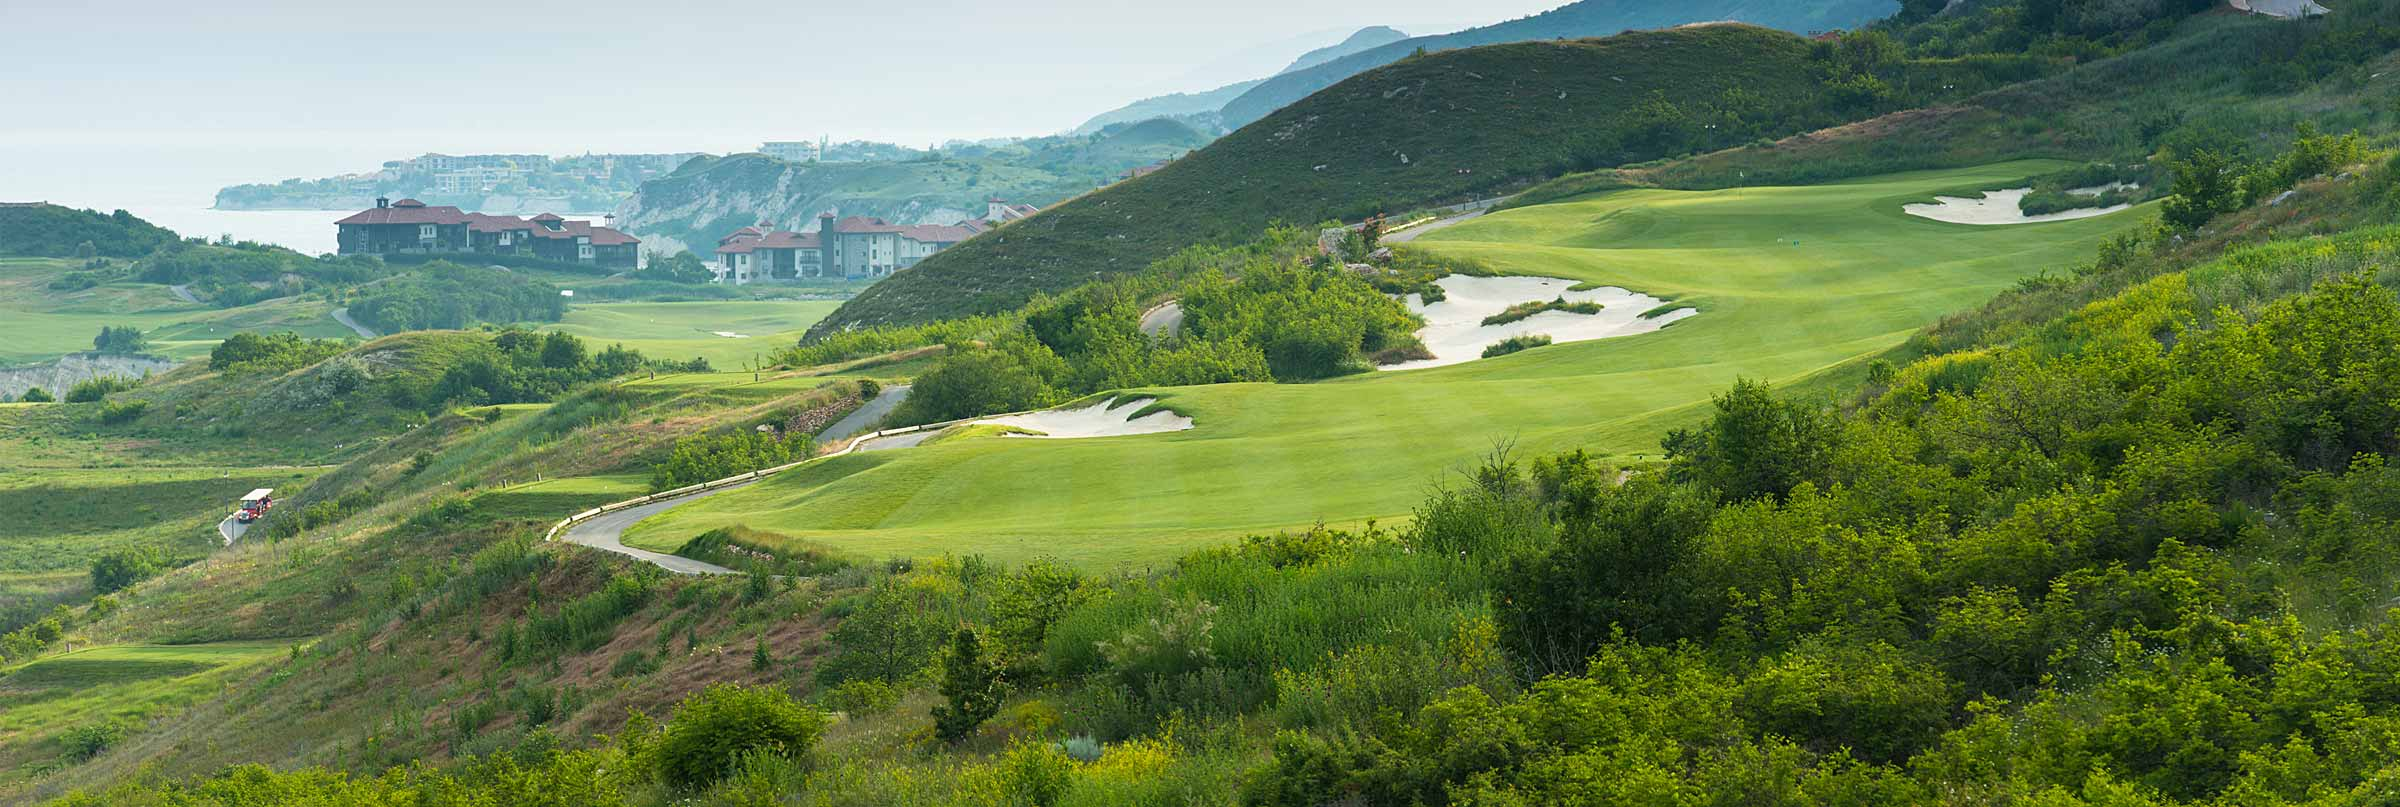 Thracian Cliffs Golf Resort 2020